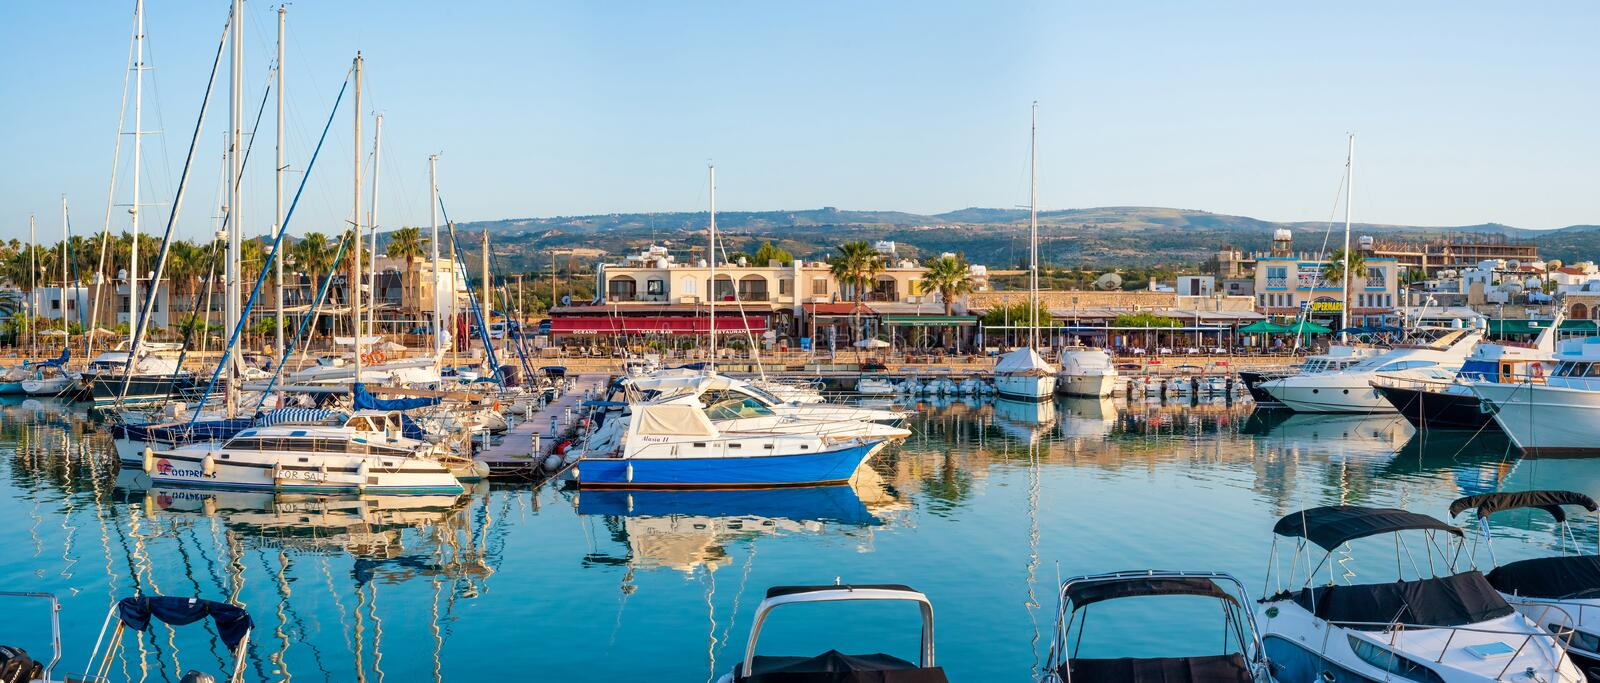 LATCHI - MAY 19 : Yachts in harbor in harbour on May 19, 2015 in royalty free stock photo